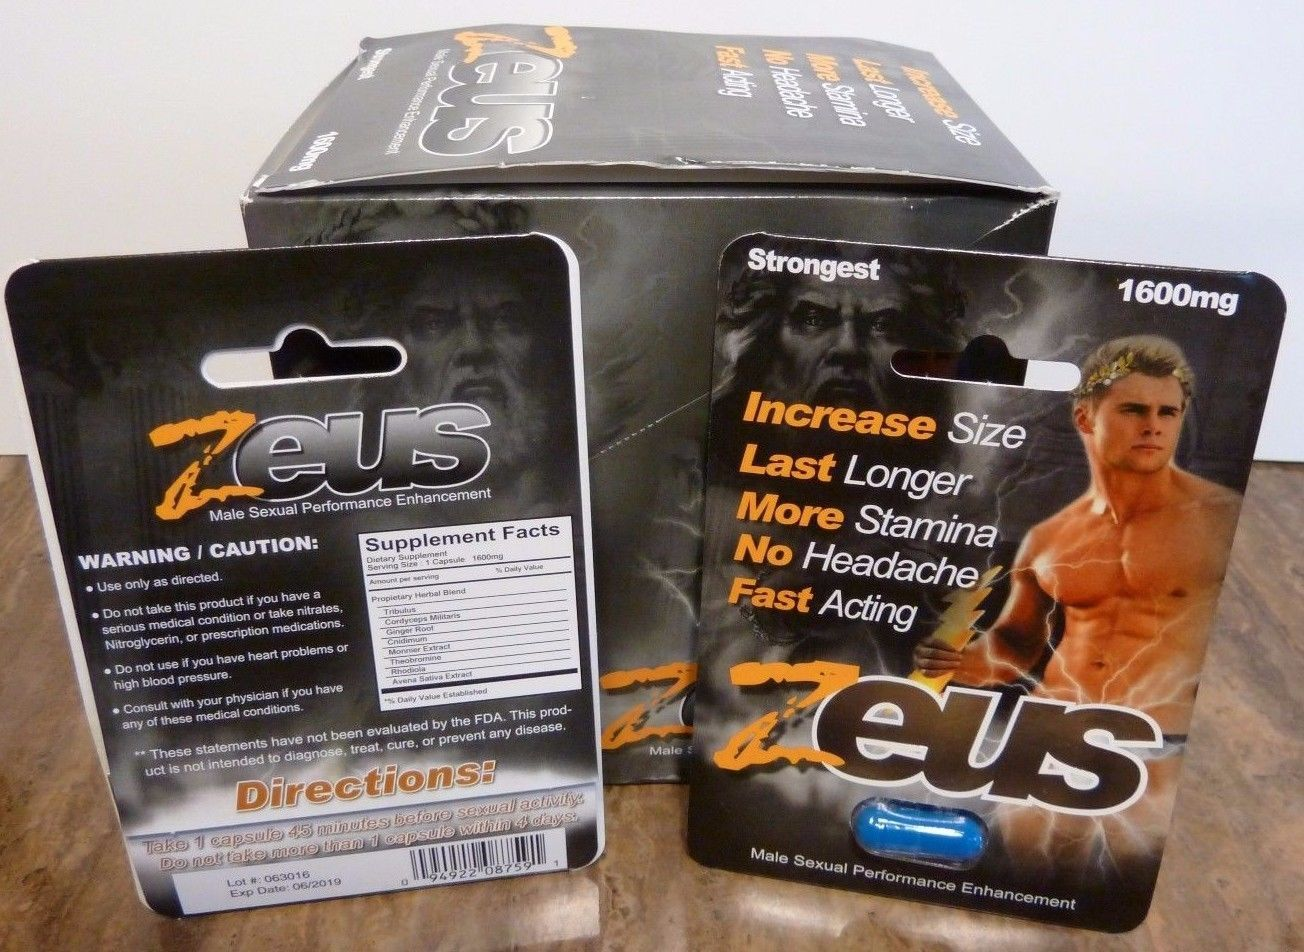 zeus 1600 mg male sexual enhancement 1 box of 25 capsules